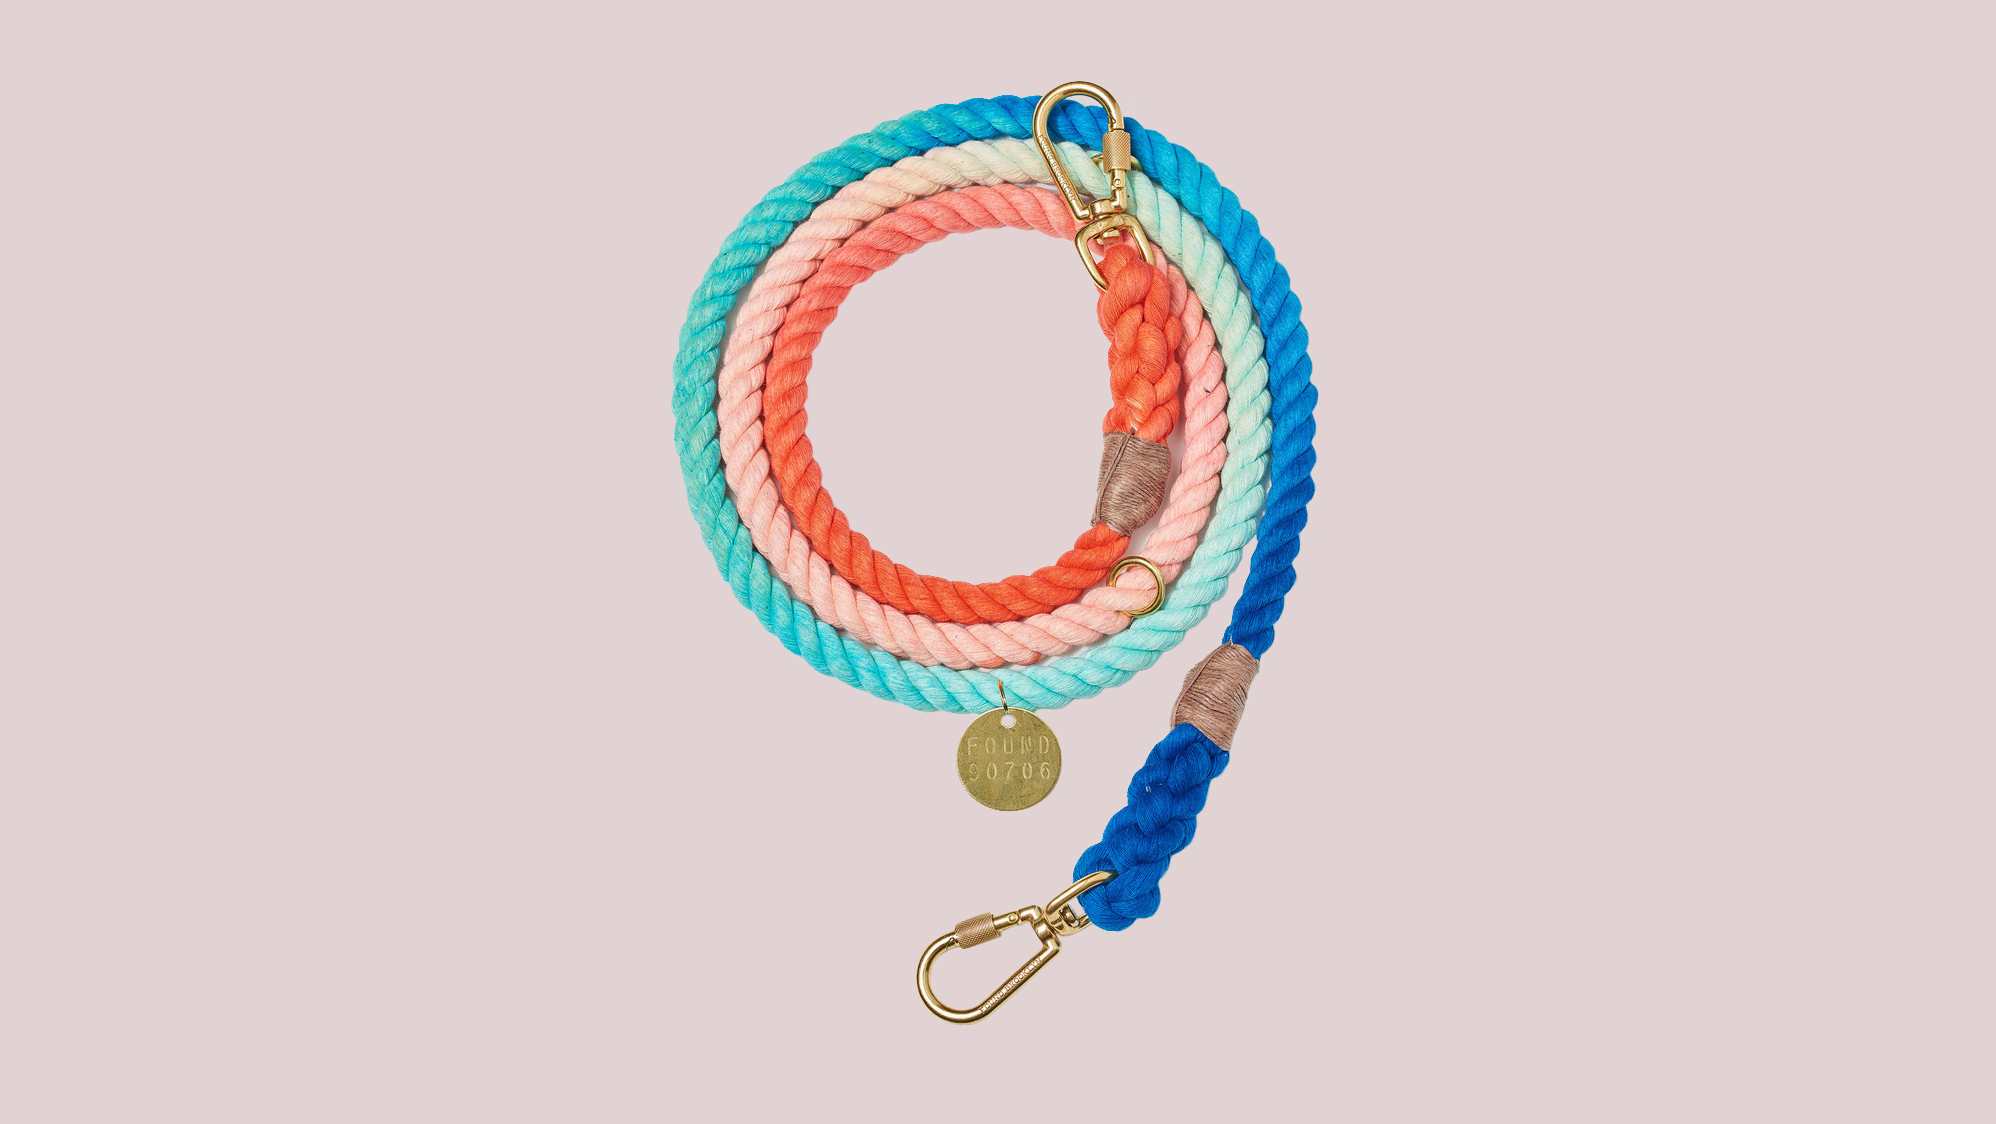 Ombré Rope Dog Leash